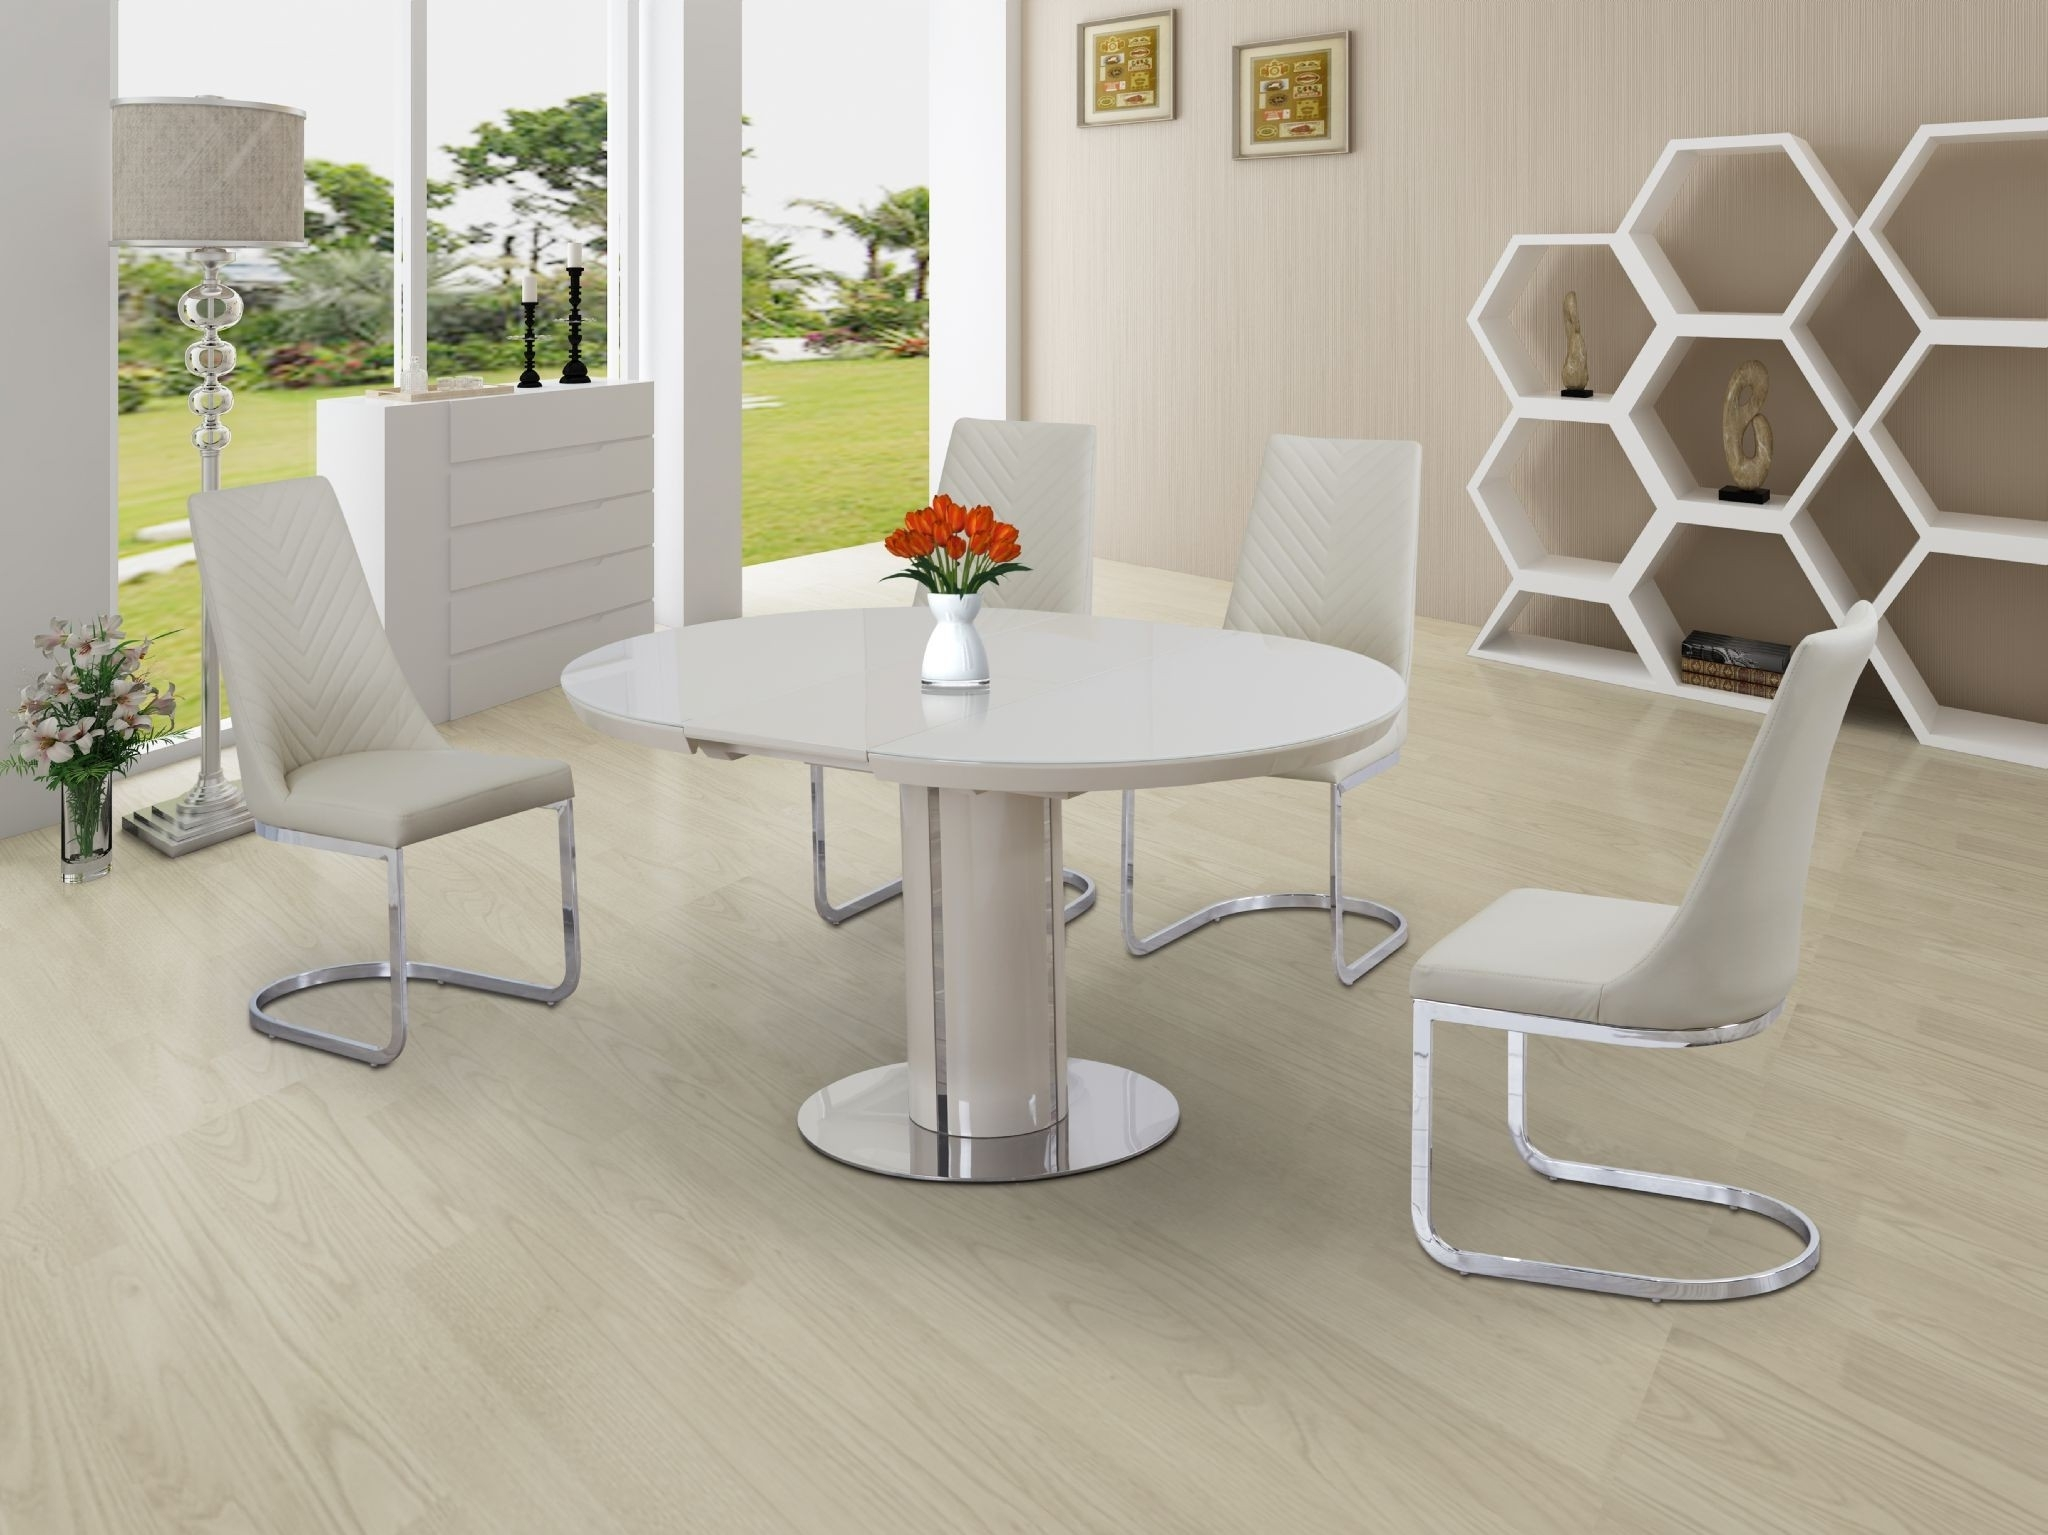 White High Gloss Dining Tables With Fashionable Buy Annular Cream High Gloss Extending Dining Table (View 16 of 25)